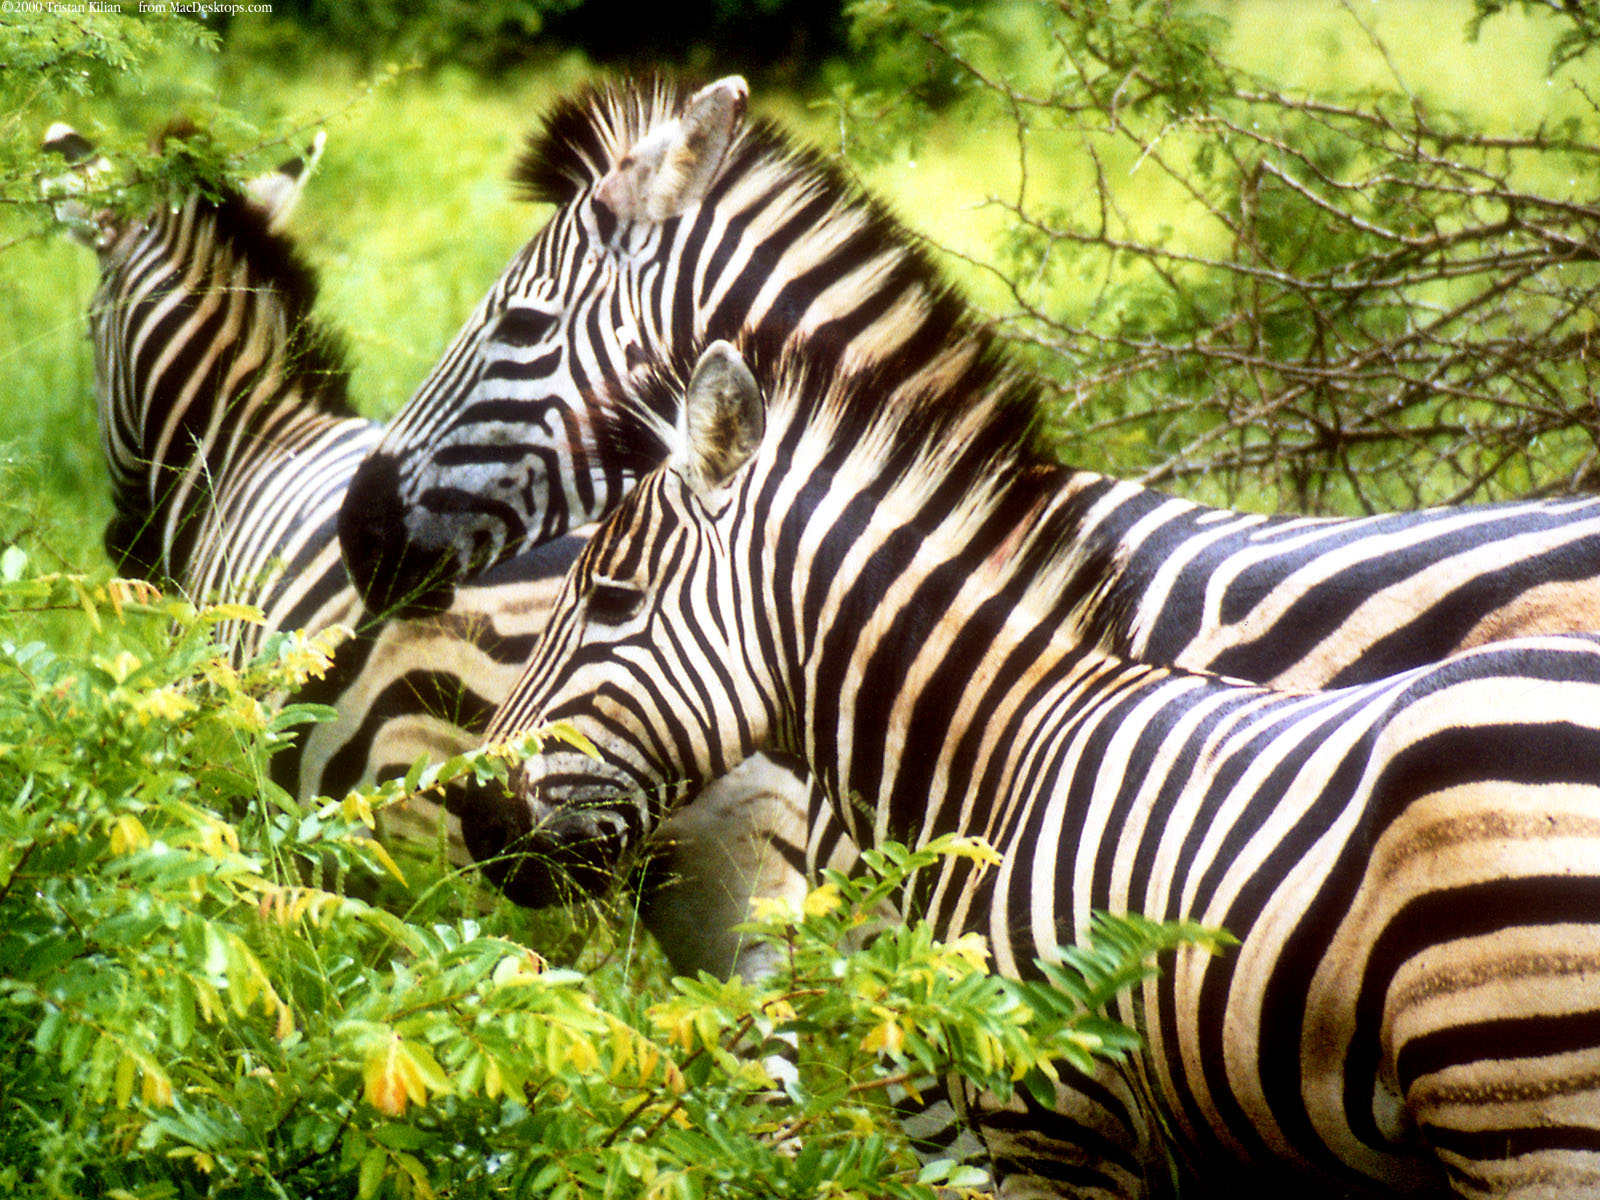 click to free download the wallpaper--Pics of Animals - Zebras Wallpaper in Pixel of 1600x1200, Close Relationship Between Each Other, Doing Some Sharing 1600X1200 free wallpaper download